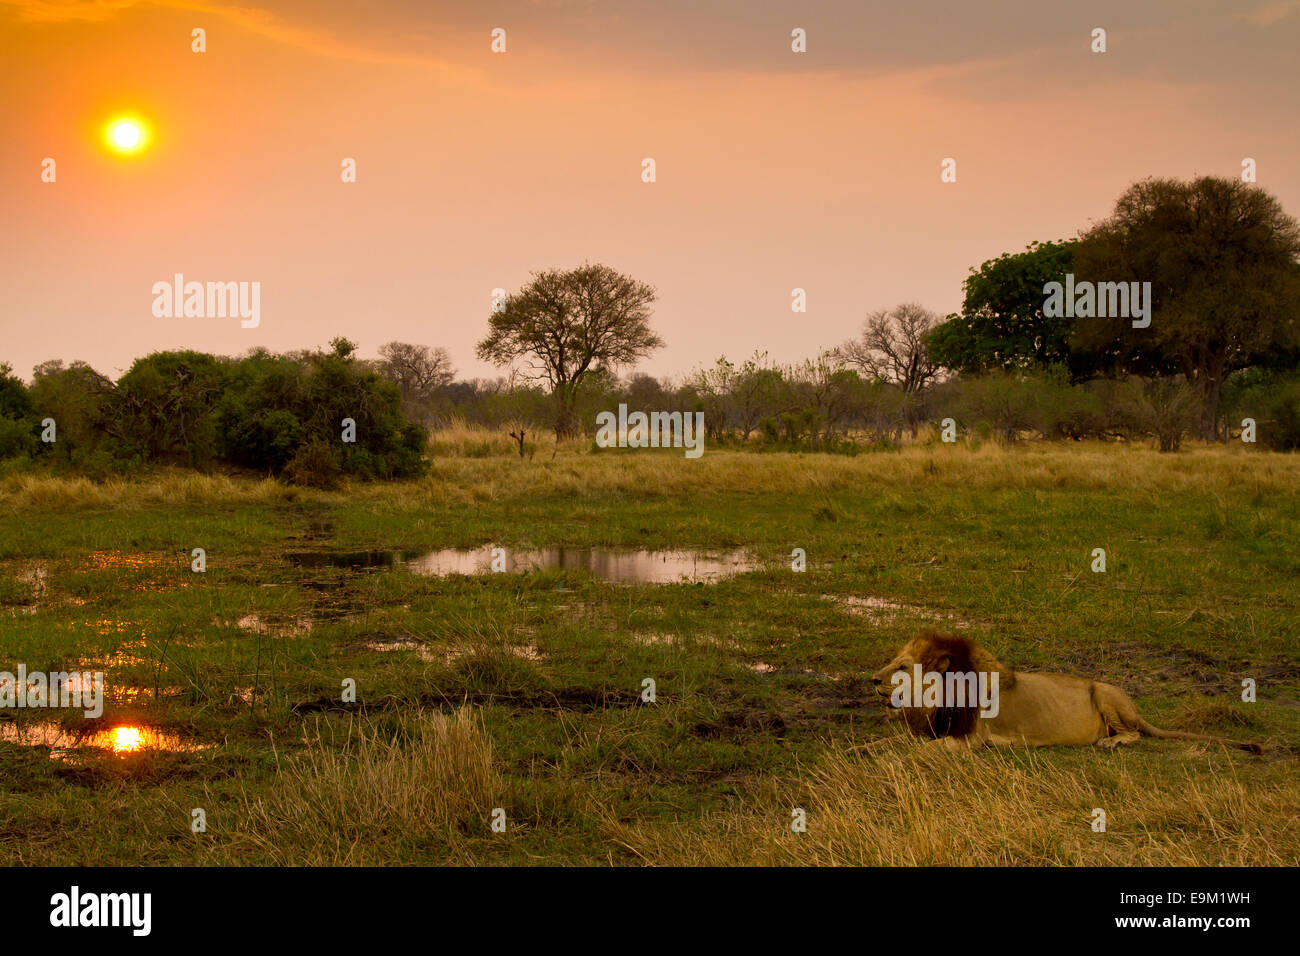 Male lion at sunset with the setting sun reflected in water - Stock Image